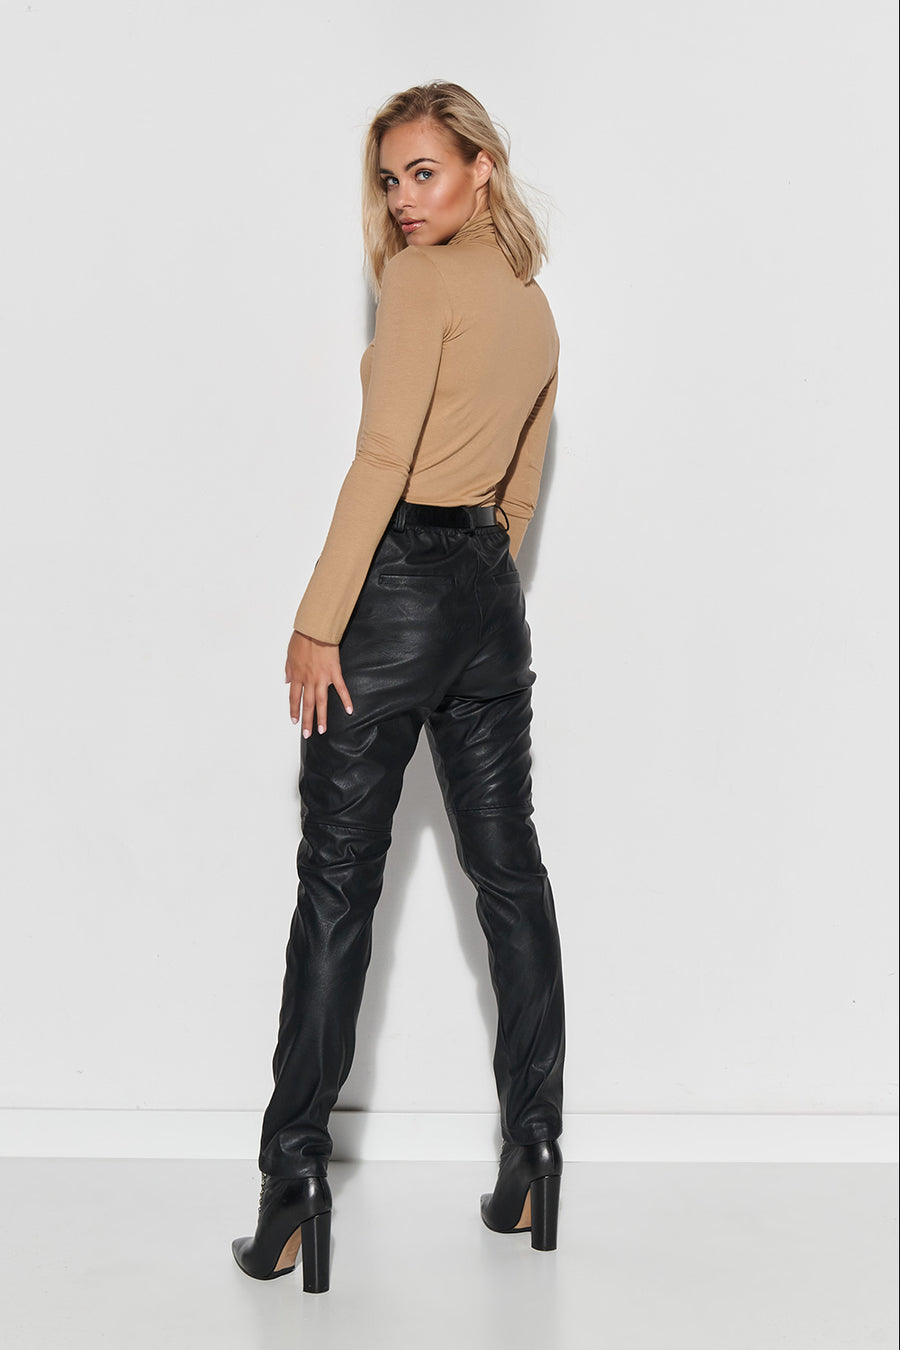 Trousers model 150087 Makadamia